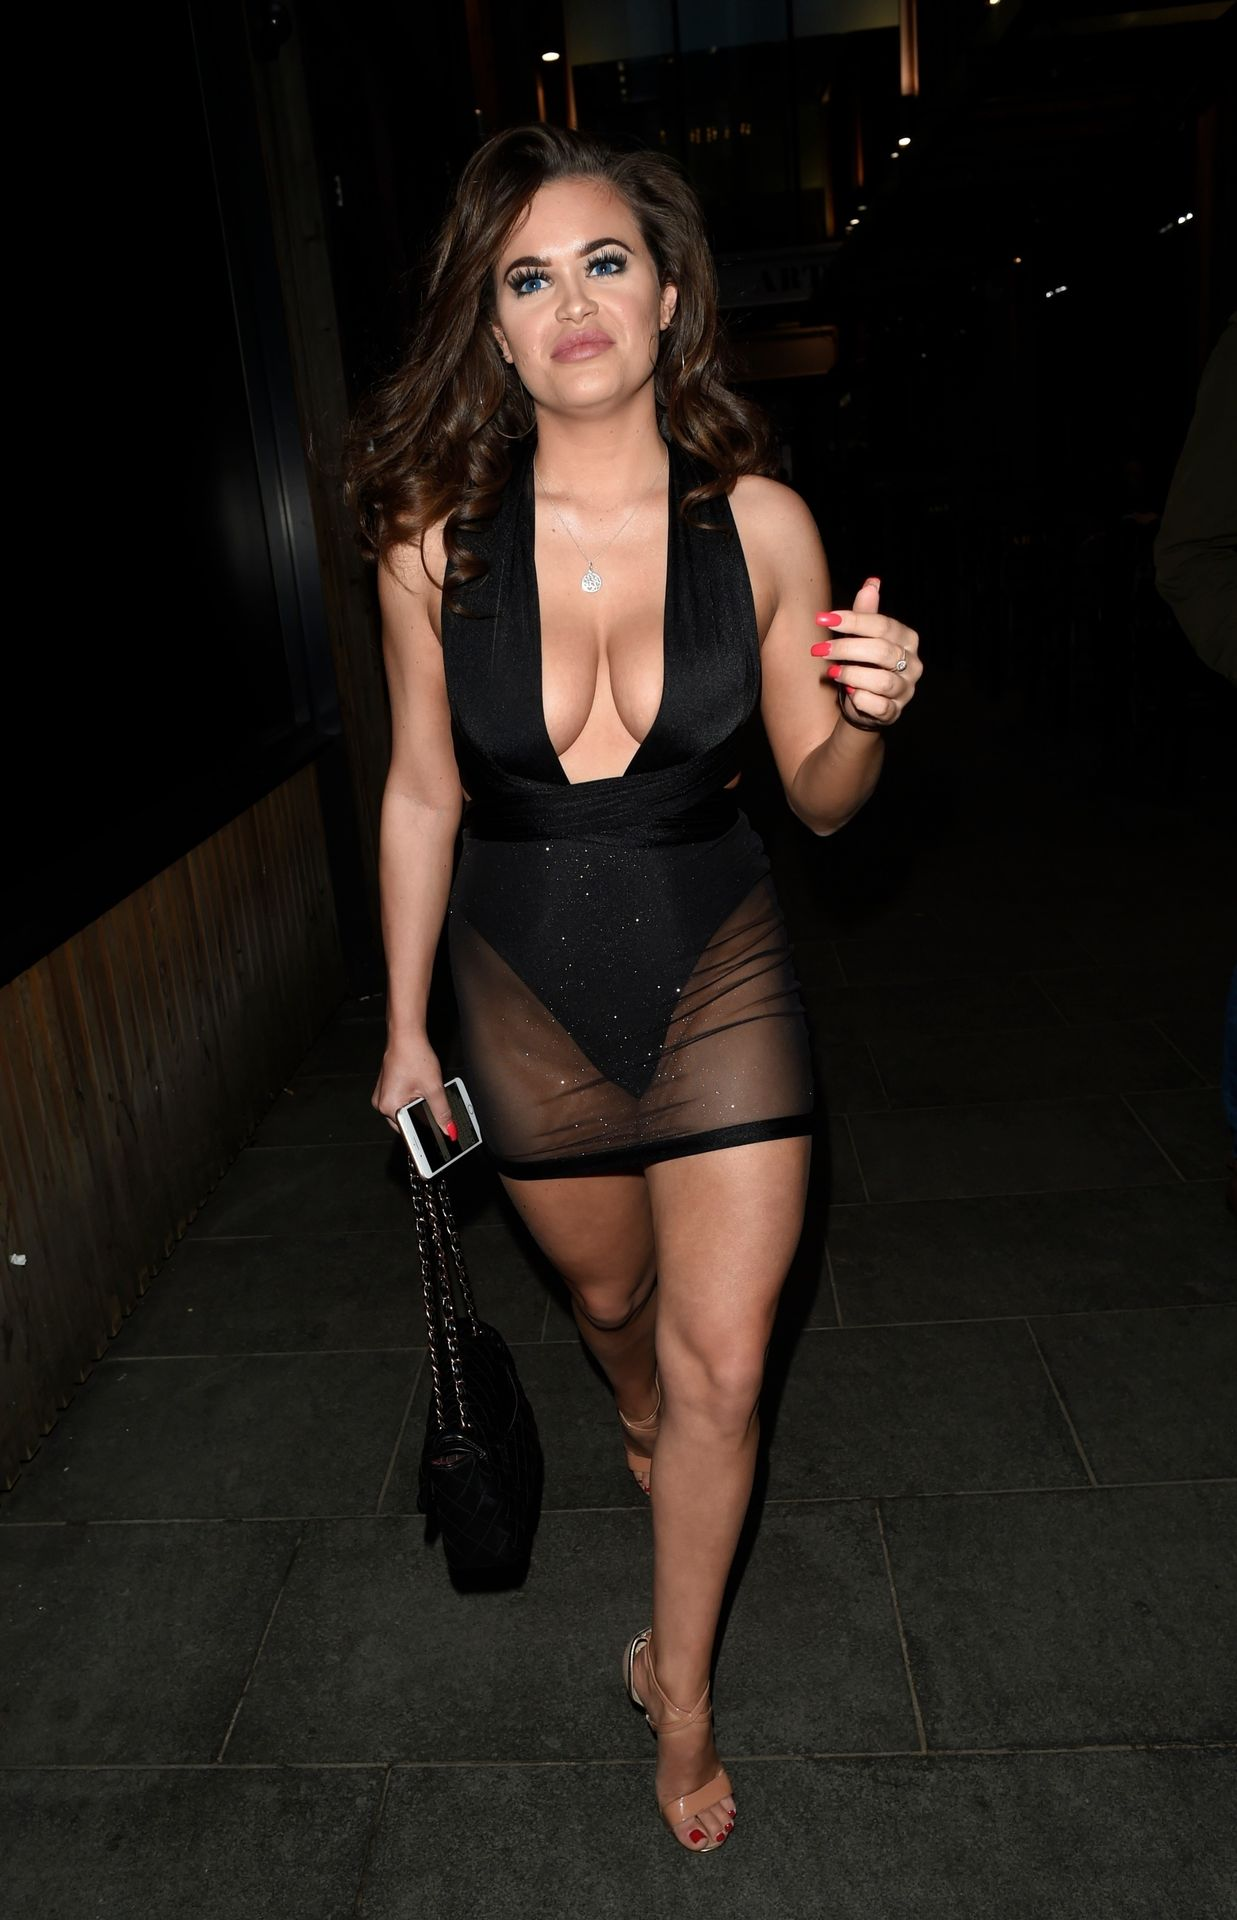 Rhianne Saxby & Sarah Longbottom Look Hot In Manchester 0004